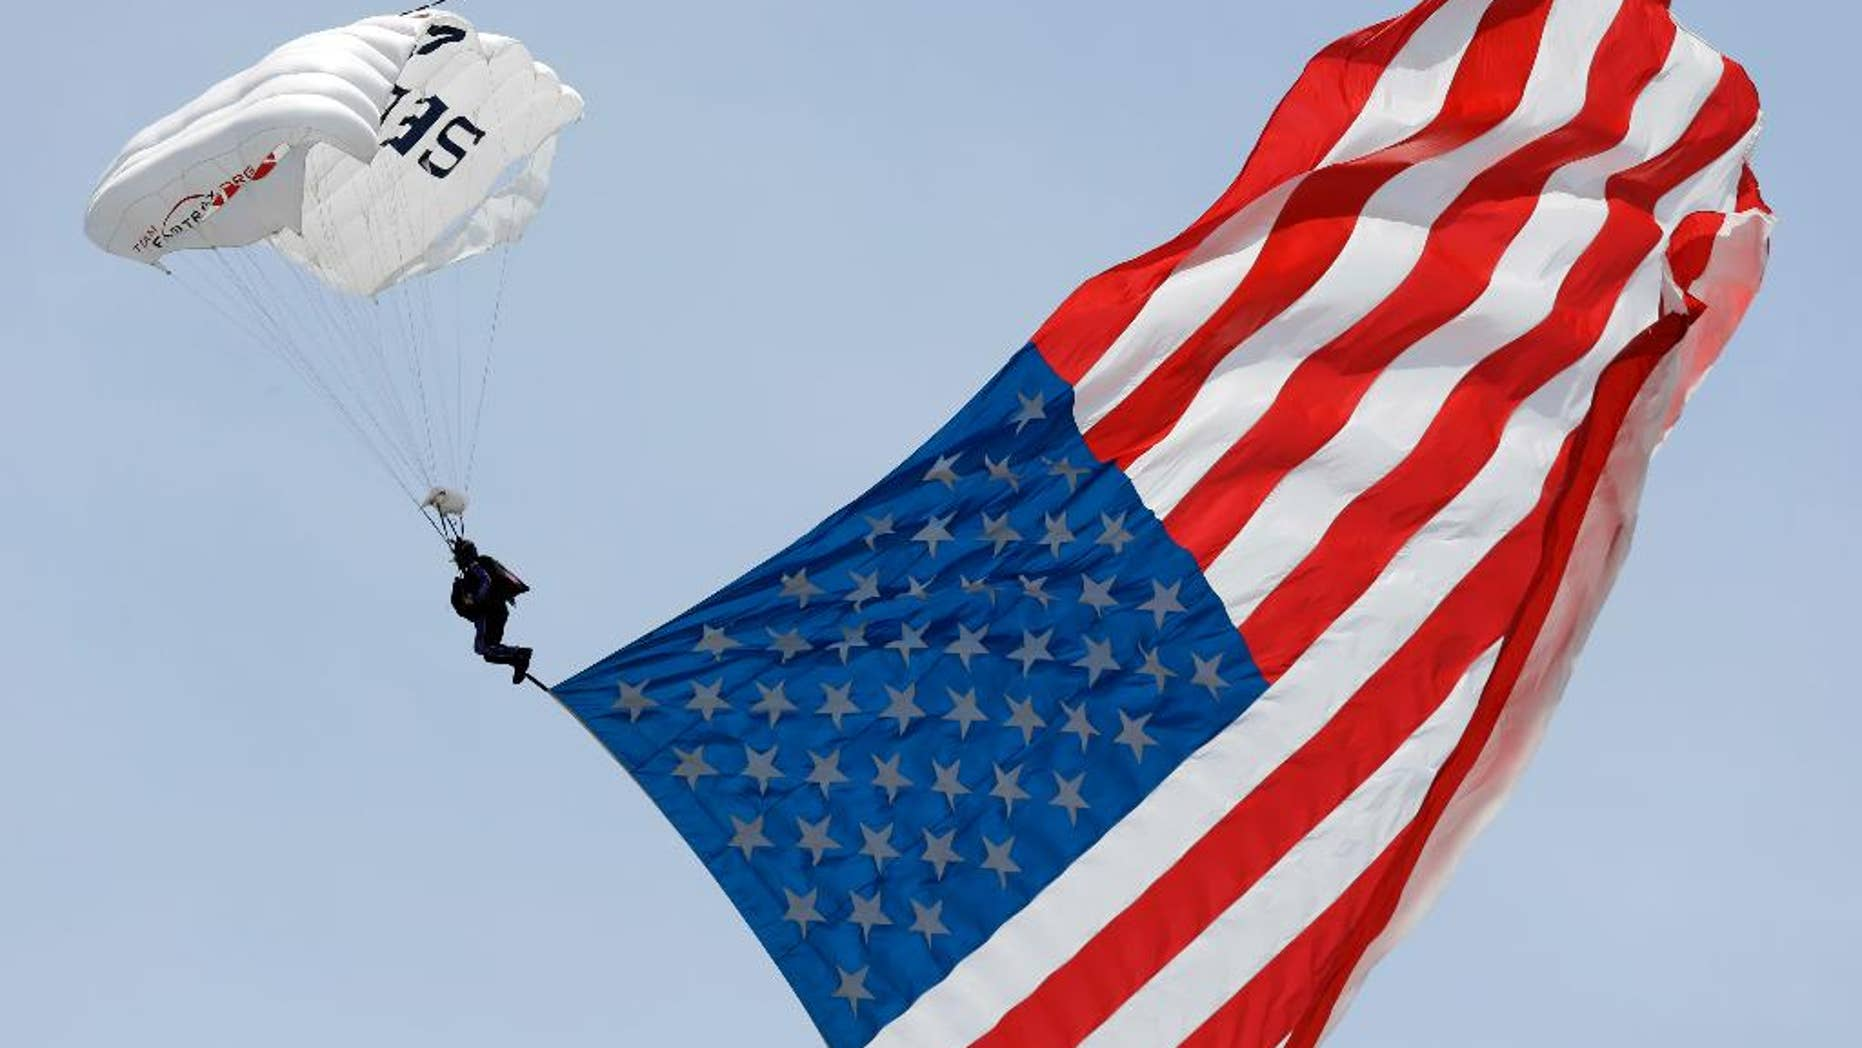 A parachutist descends into the Charlotte Motor Speedway prior to a NASCAR Xfinity Series auto race in Concord, N.C., Saturday, May 28, 2016. (AP Photo/Gerry Broome)